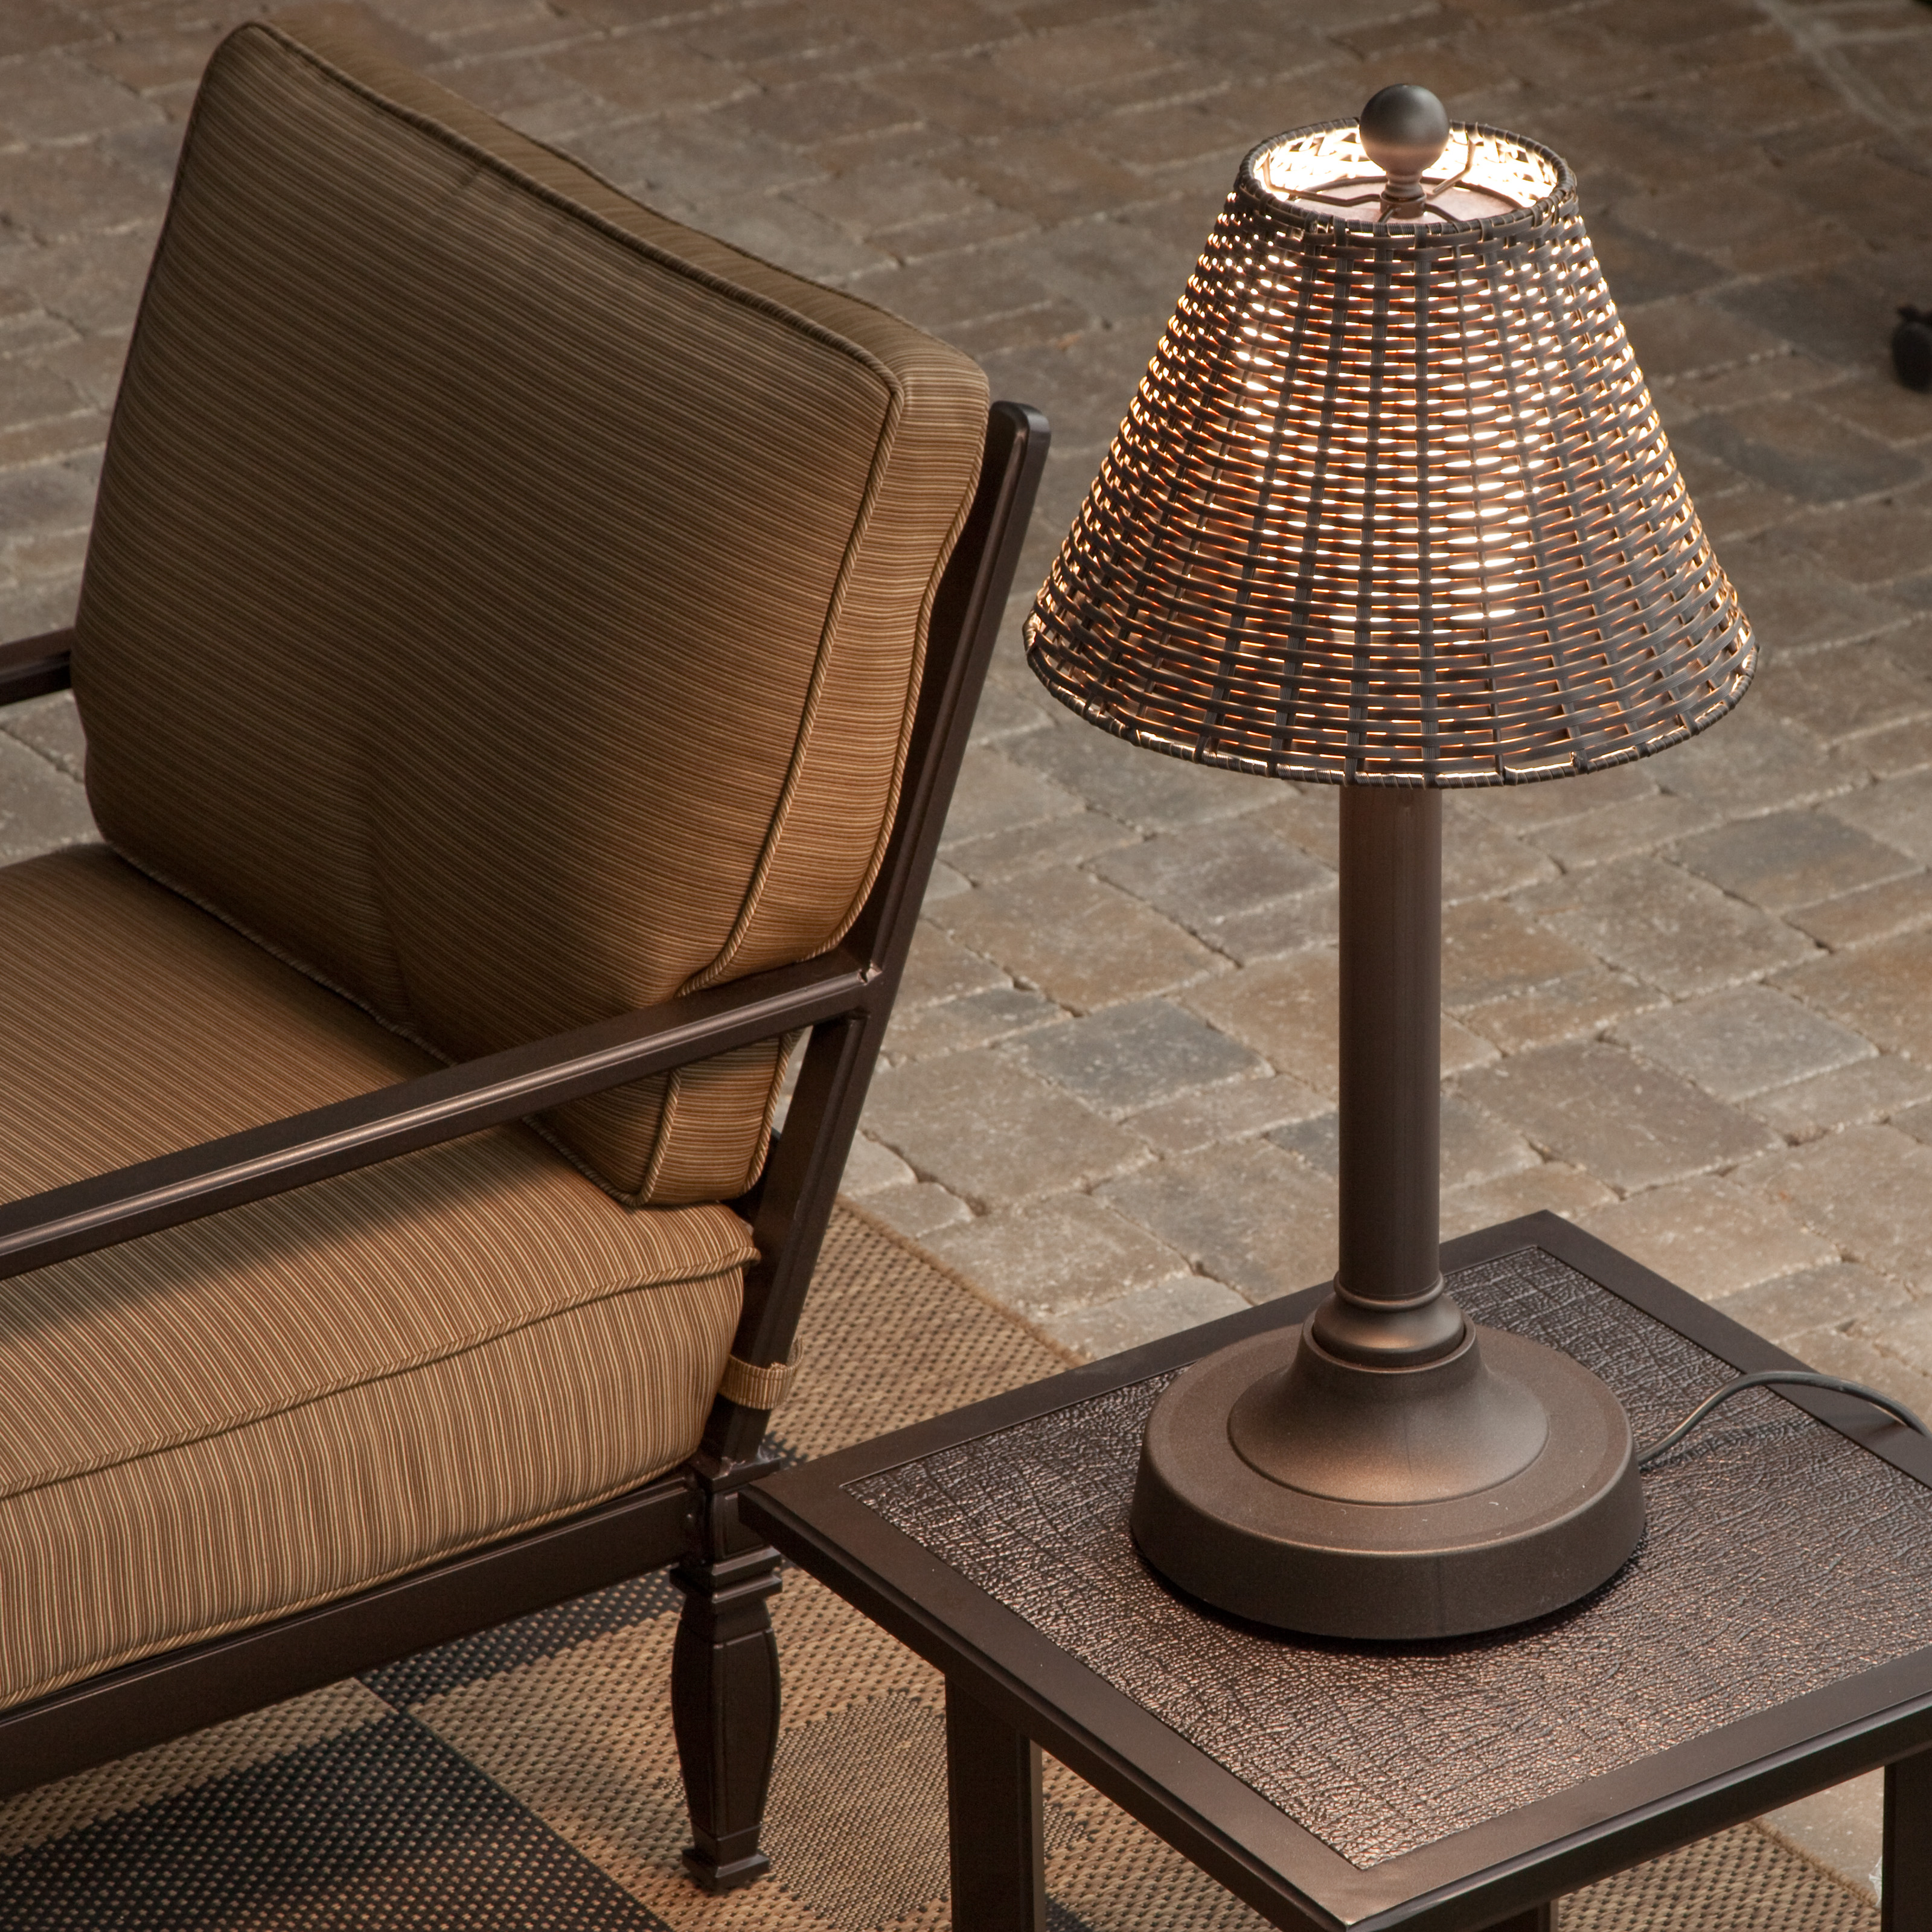 Tahti outdoor patio table lamp outdoor lamps at hayneedle for Patio lamps outdoor lighting